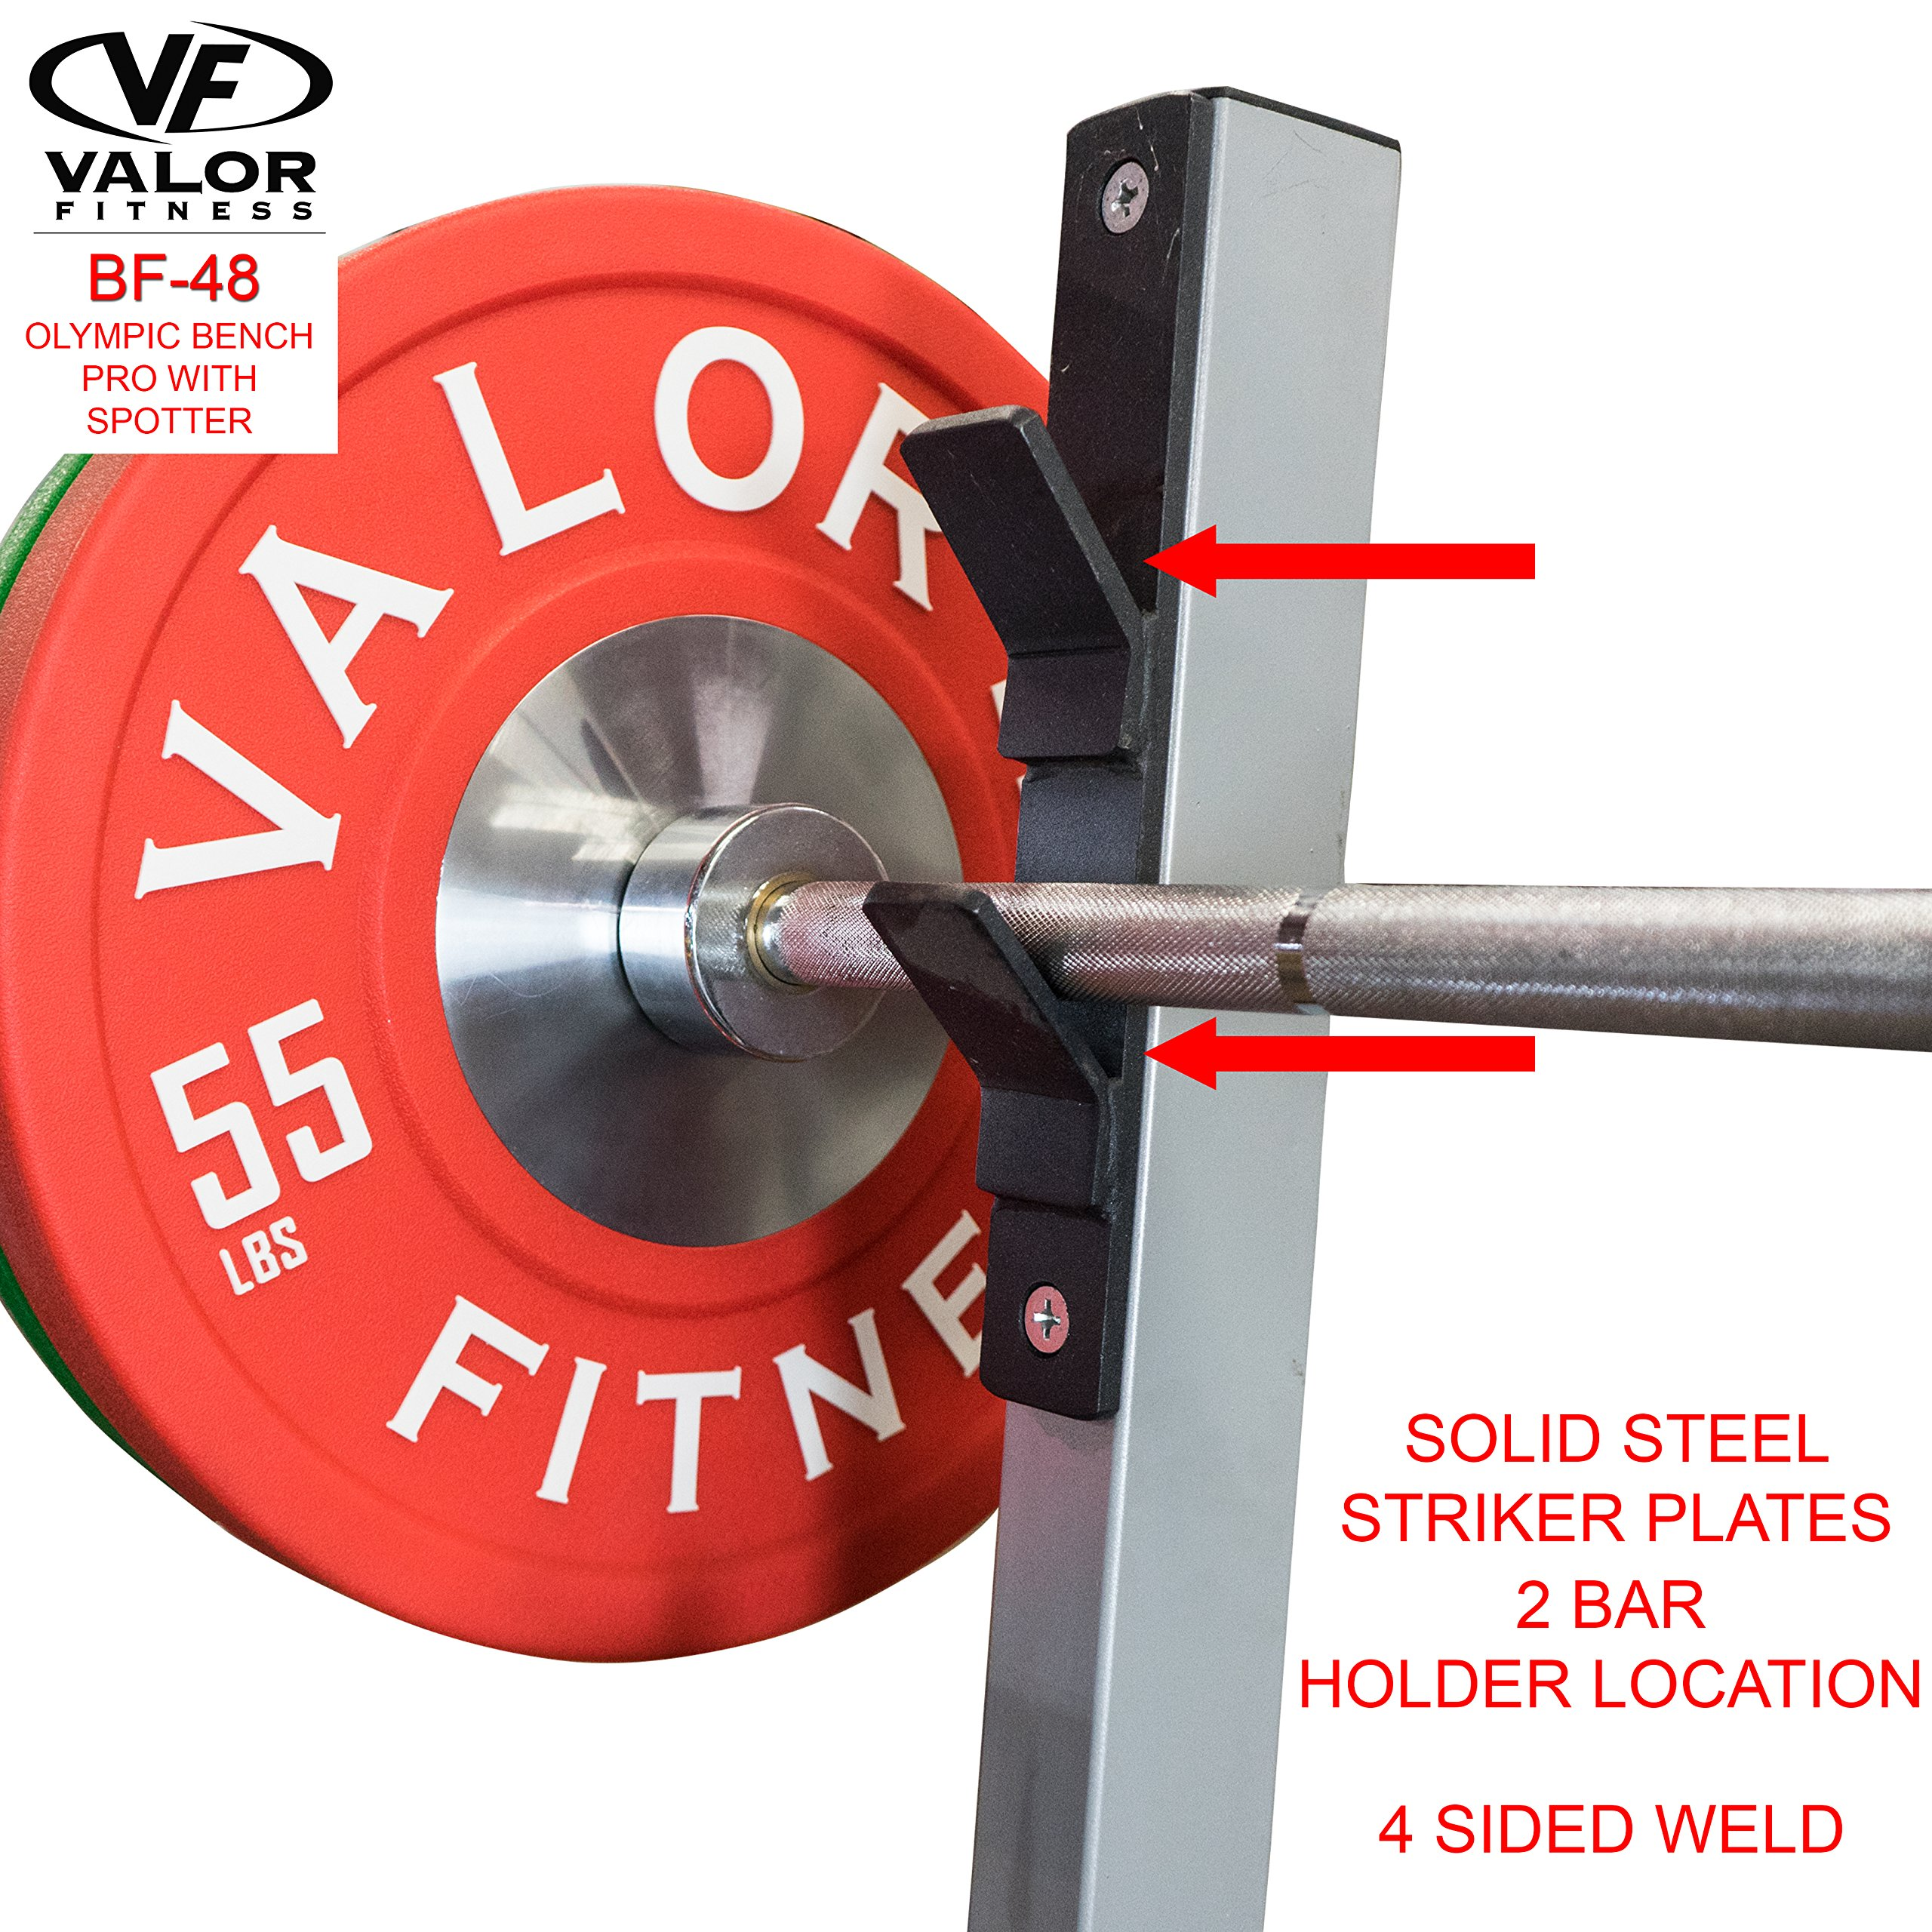 Valor Fitness BF-48 Olympic Bench Pro with Spotter by Valor Fitness (Image #5)